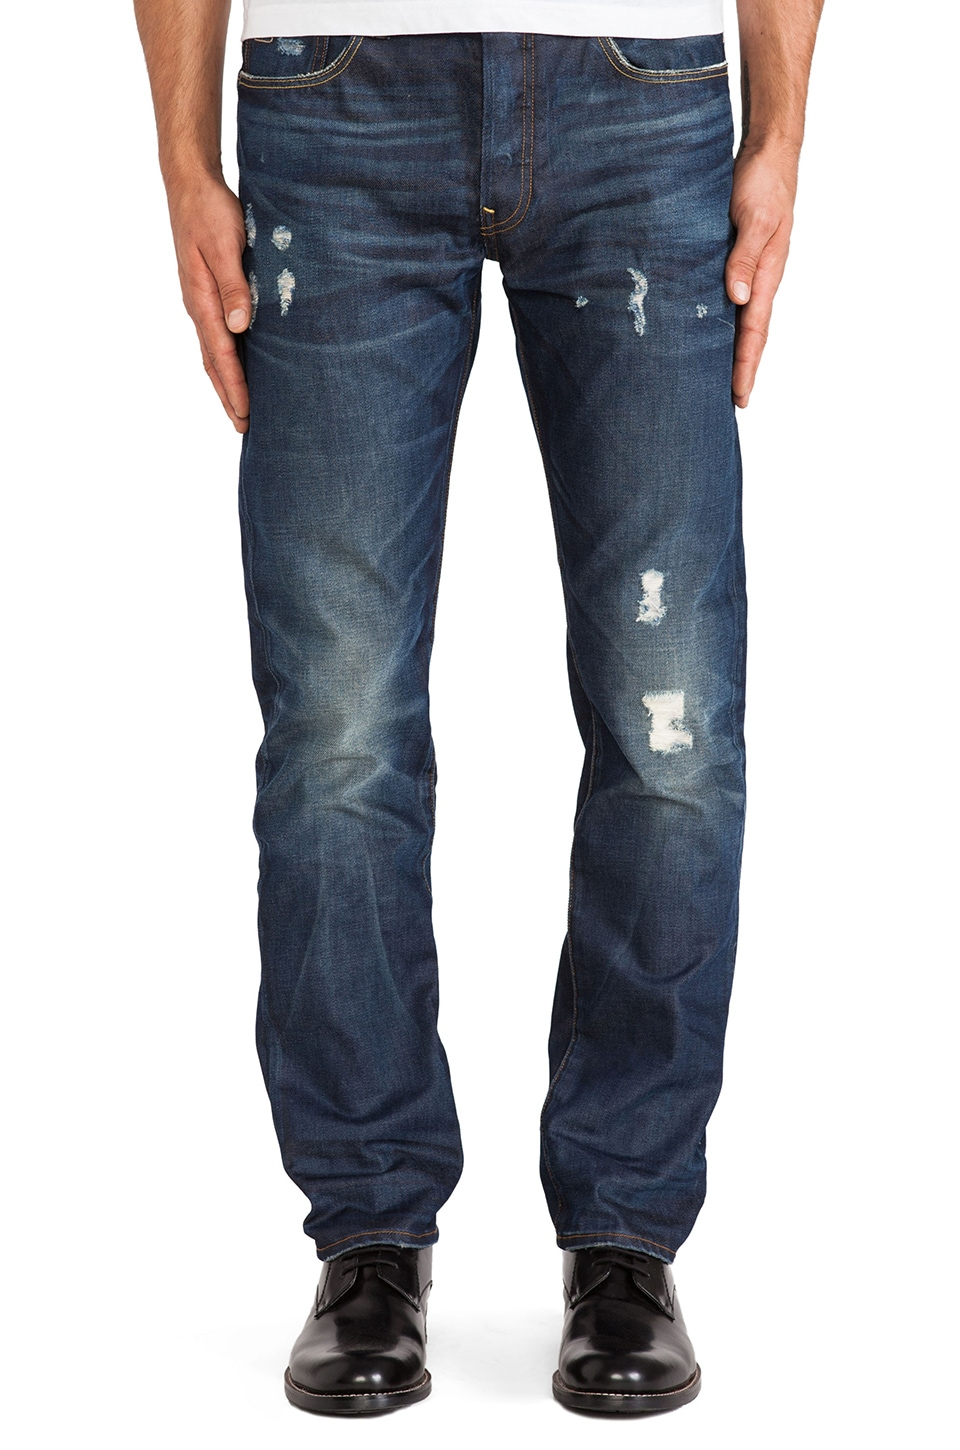 G-Star 3301 Straight Taland Denim in Vintage Medium Aged Destroy